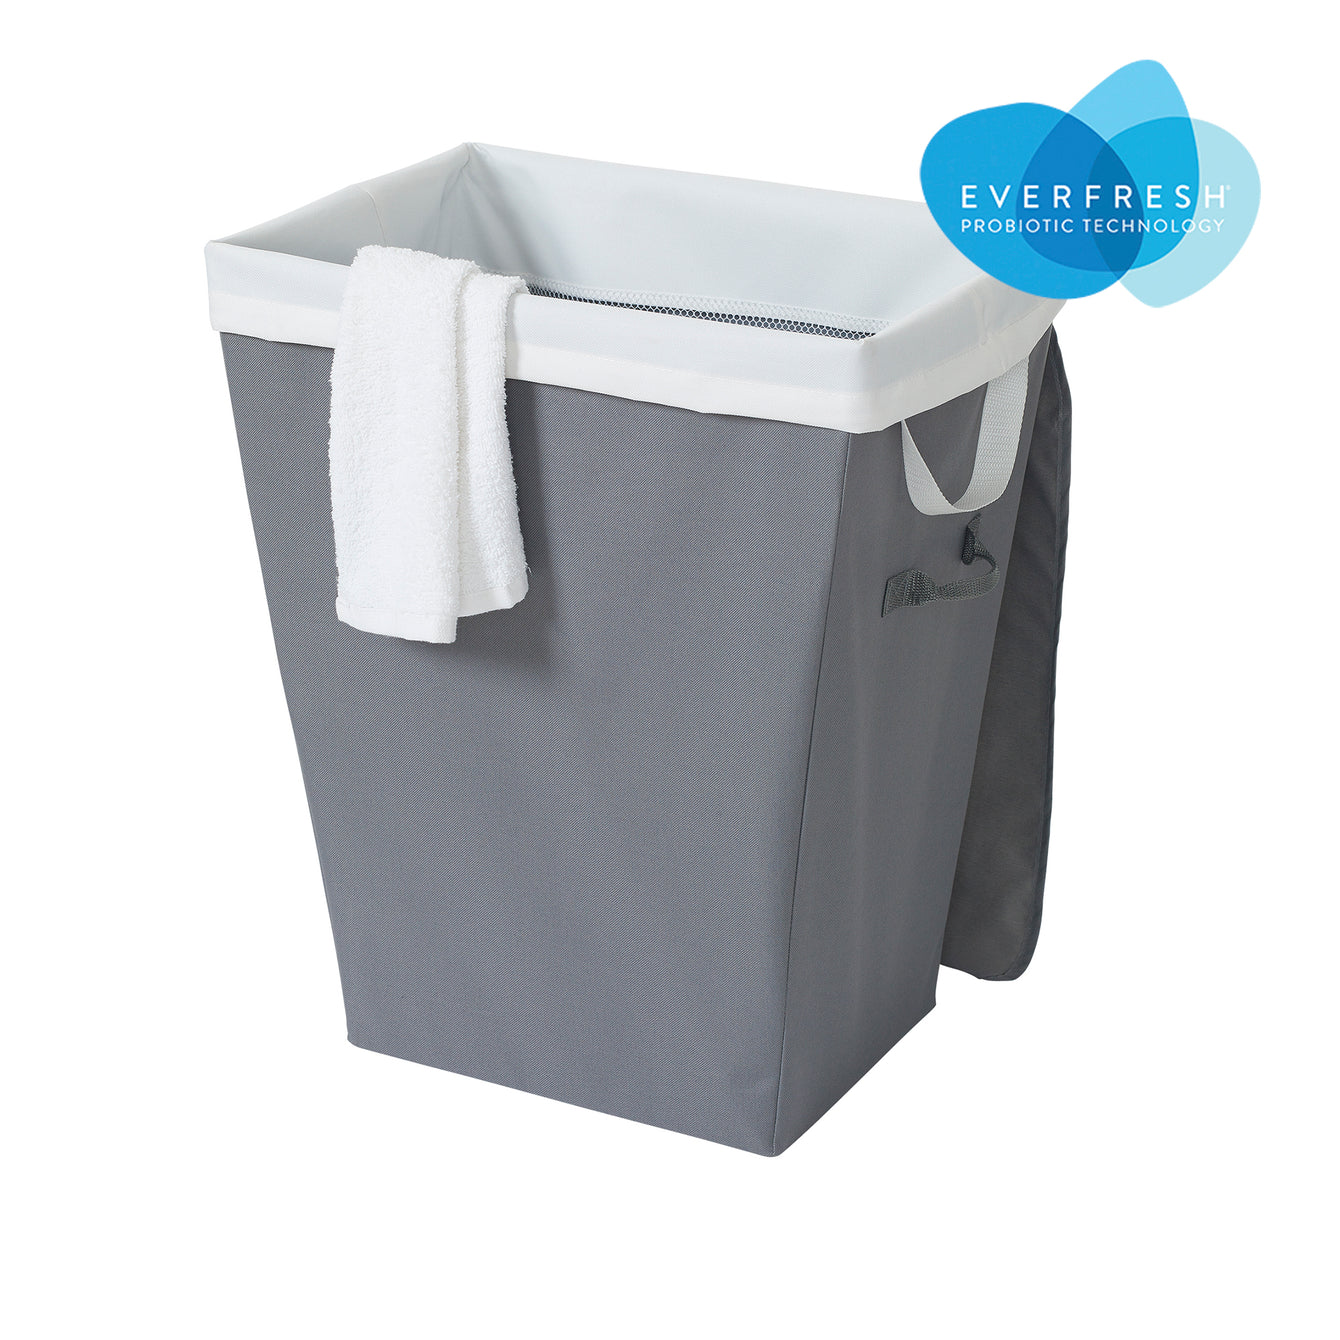 Nesting Fabric Laundry Hamper with Lid, Lift-Out Mesh Liner and EVERFRESH® Odor Control - Style 3204